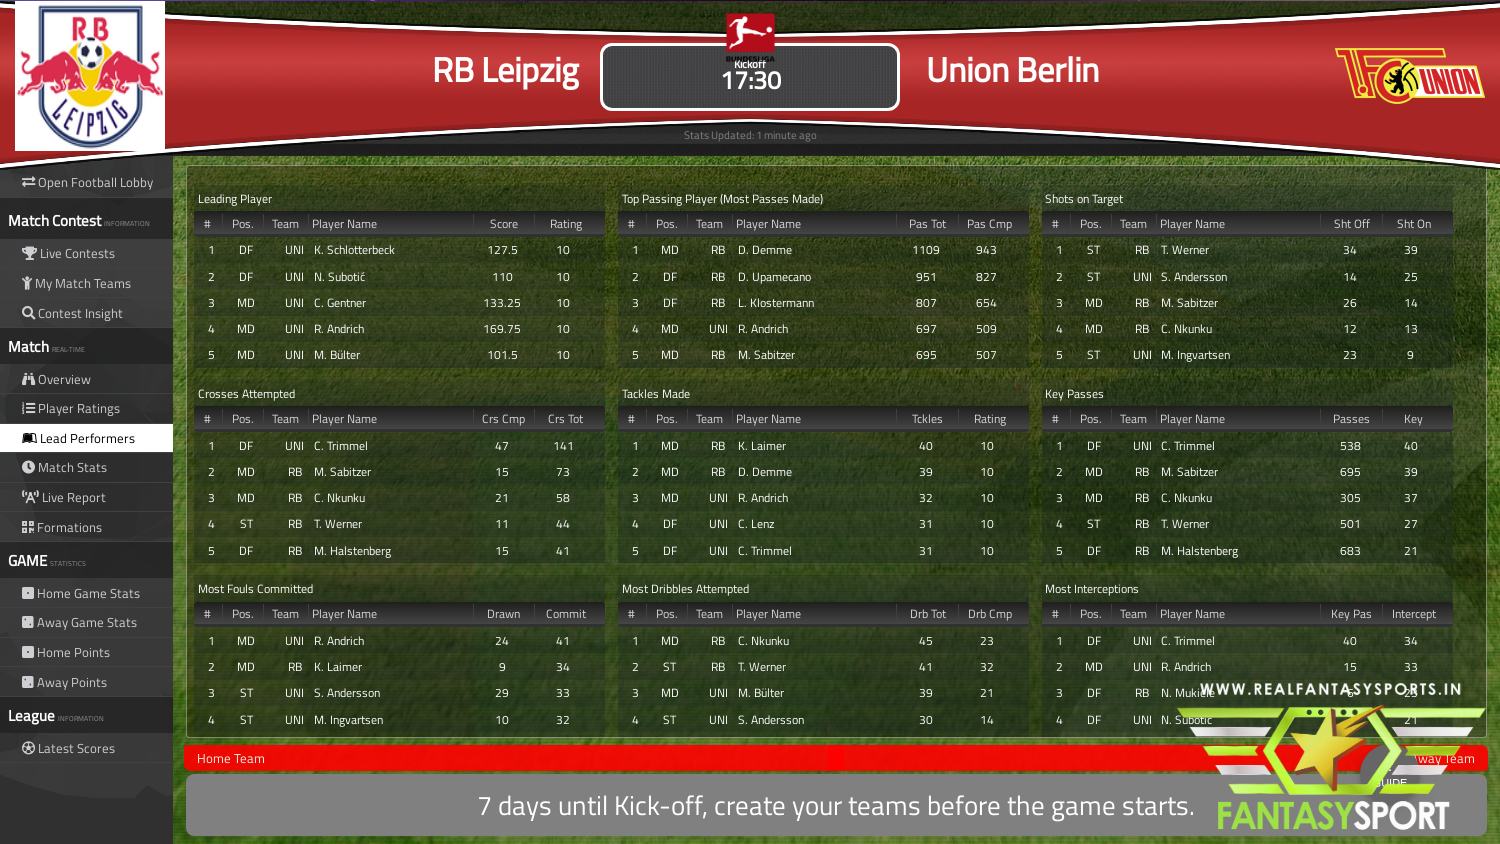 Dream Team Pick For Rb Leipzig Vs Union Berlin